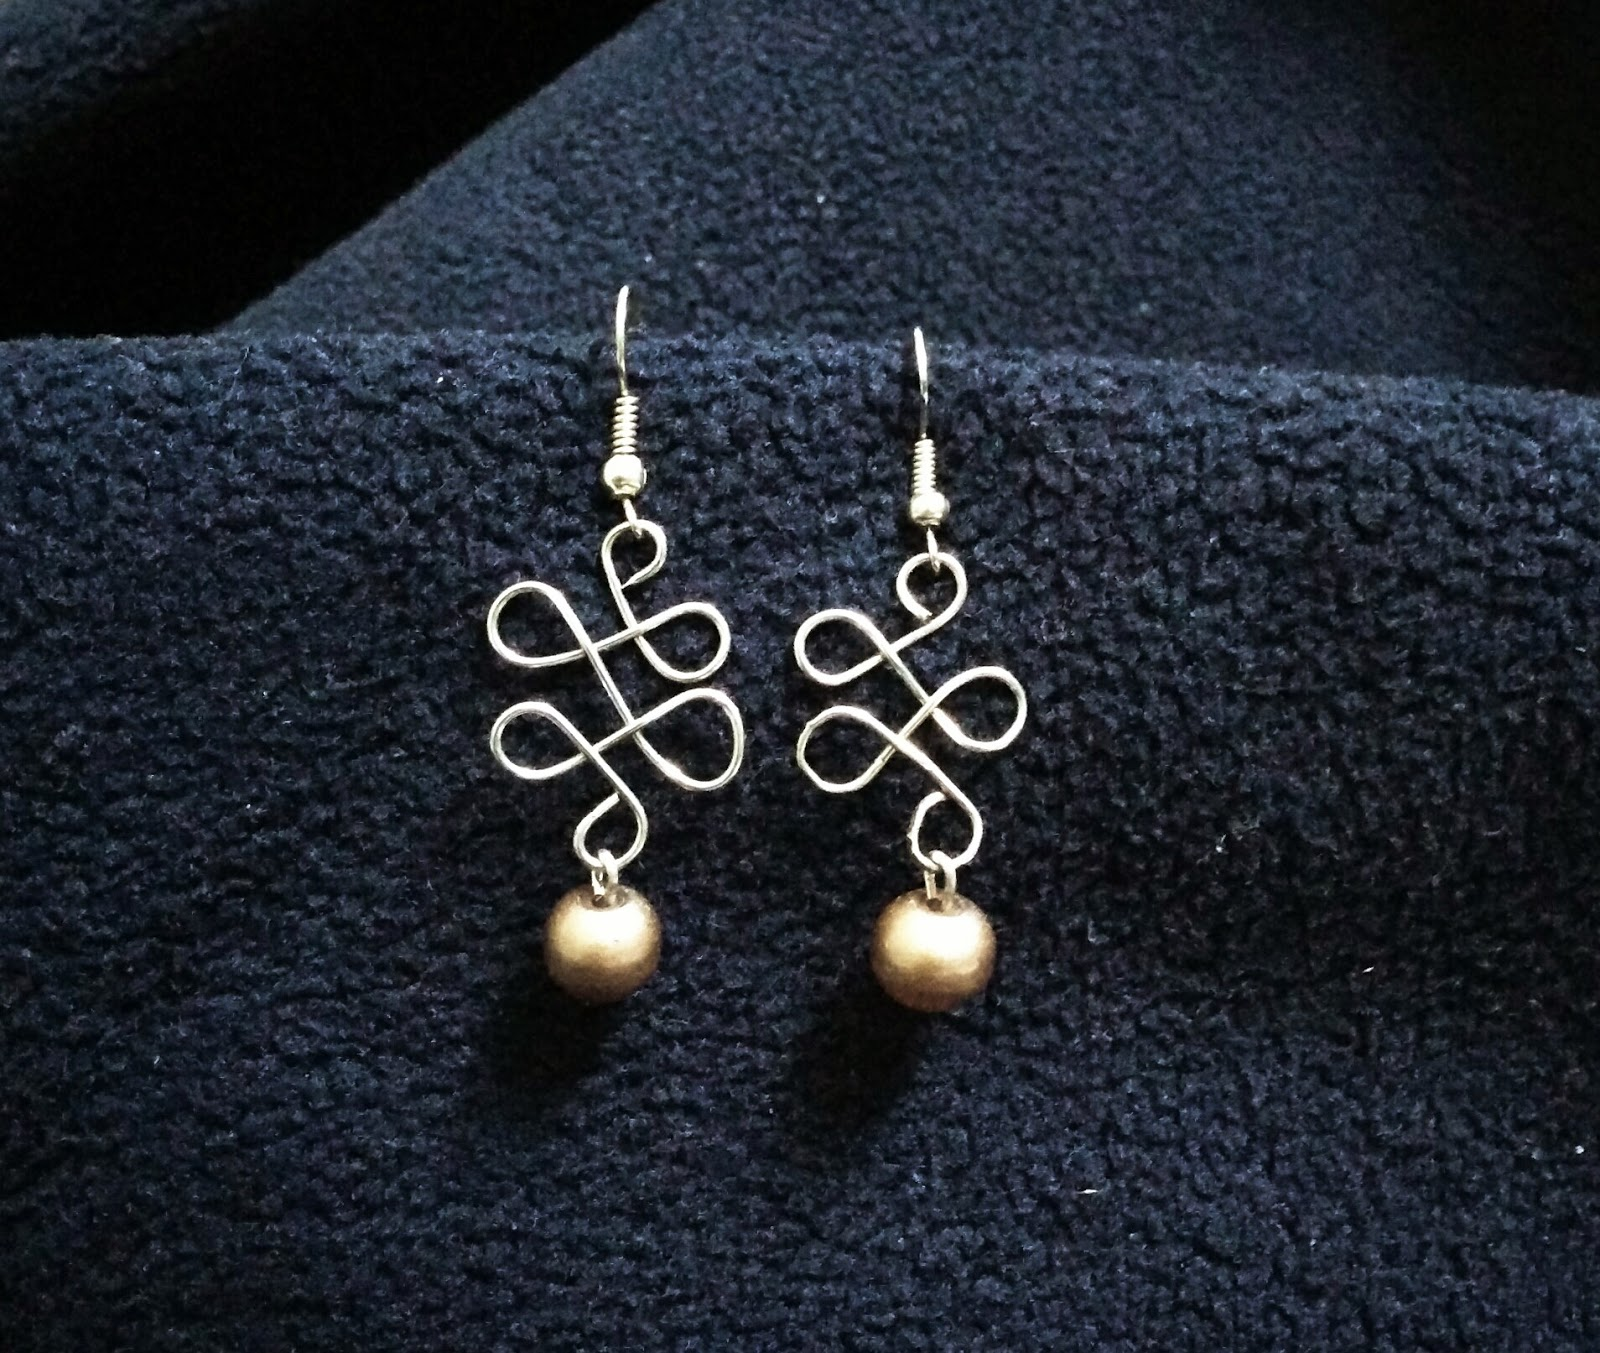 Wire-form earrings